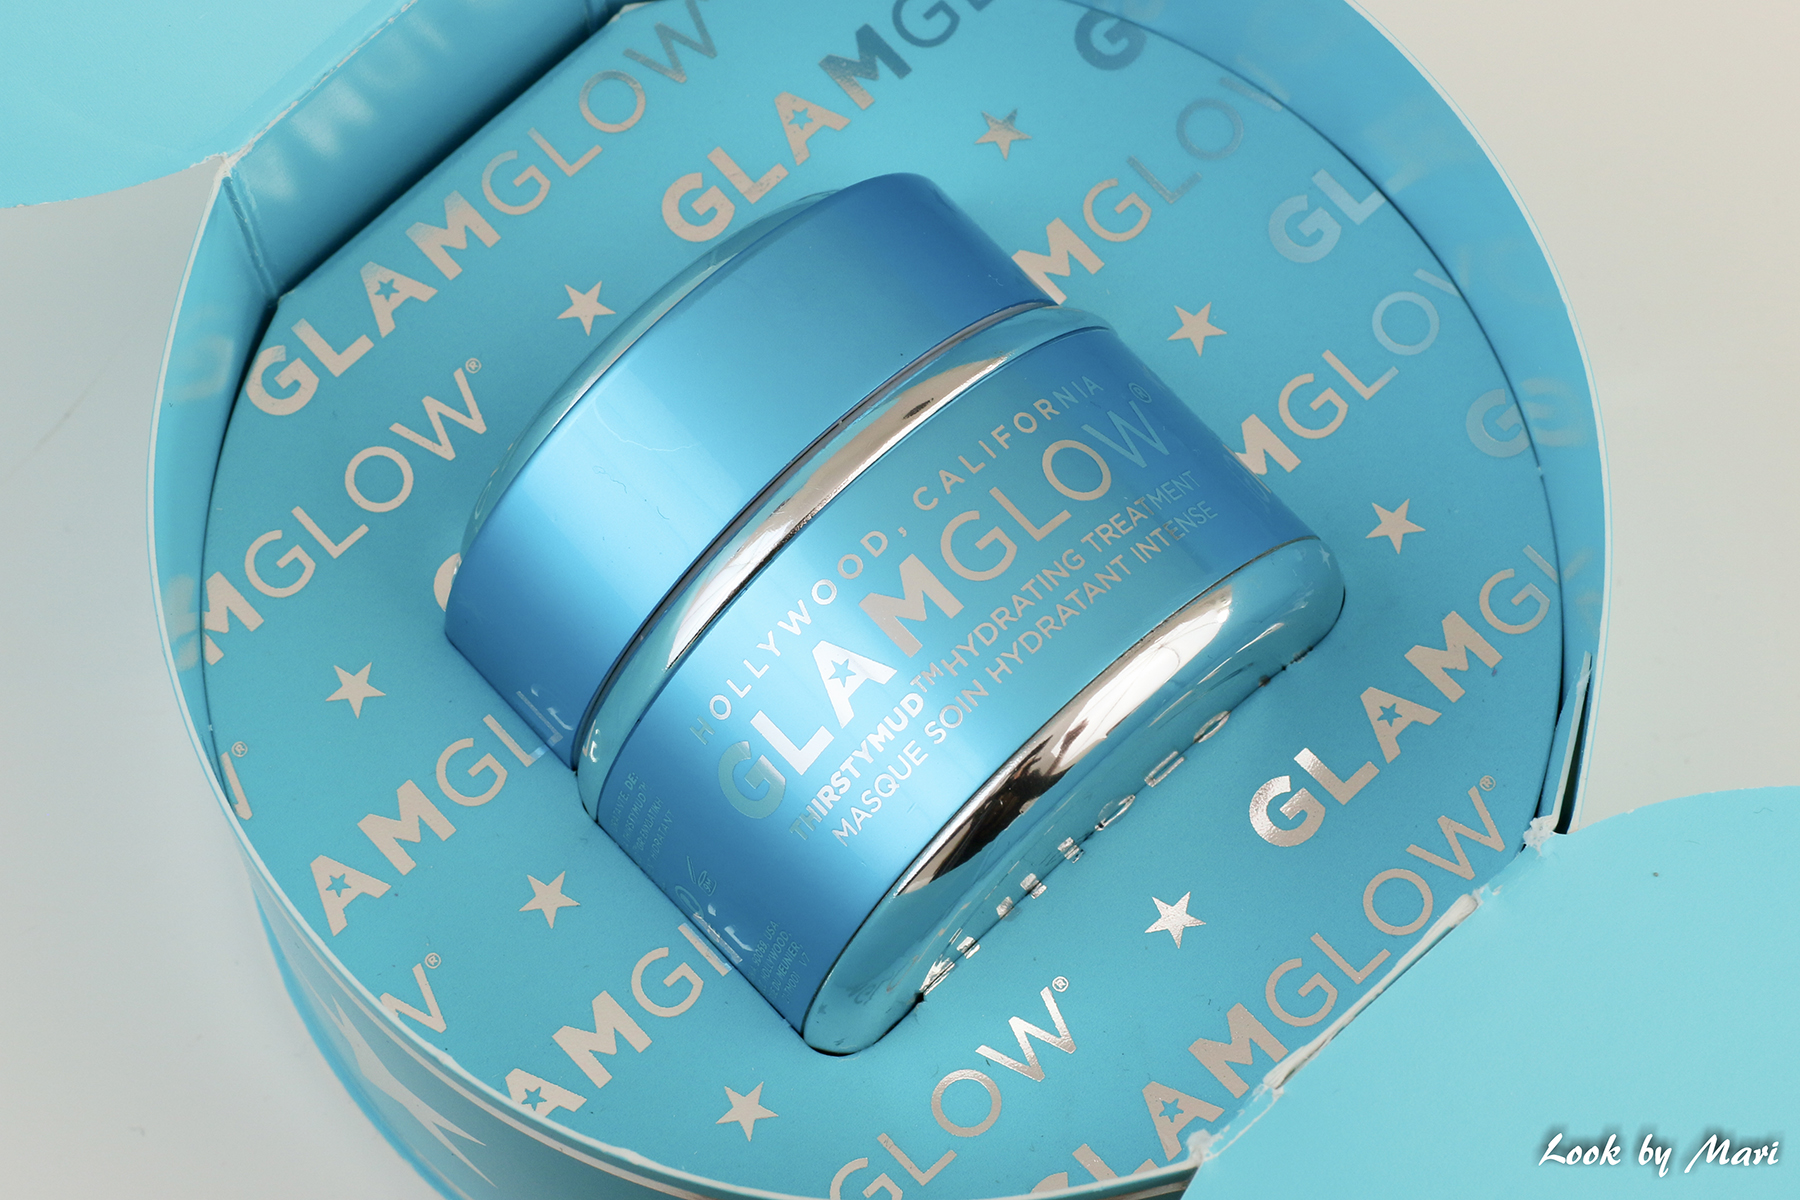 5 glamglow mud masks review worth it the price sephora price